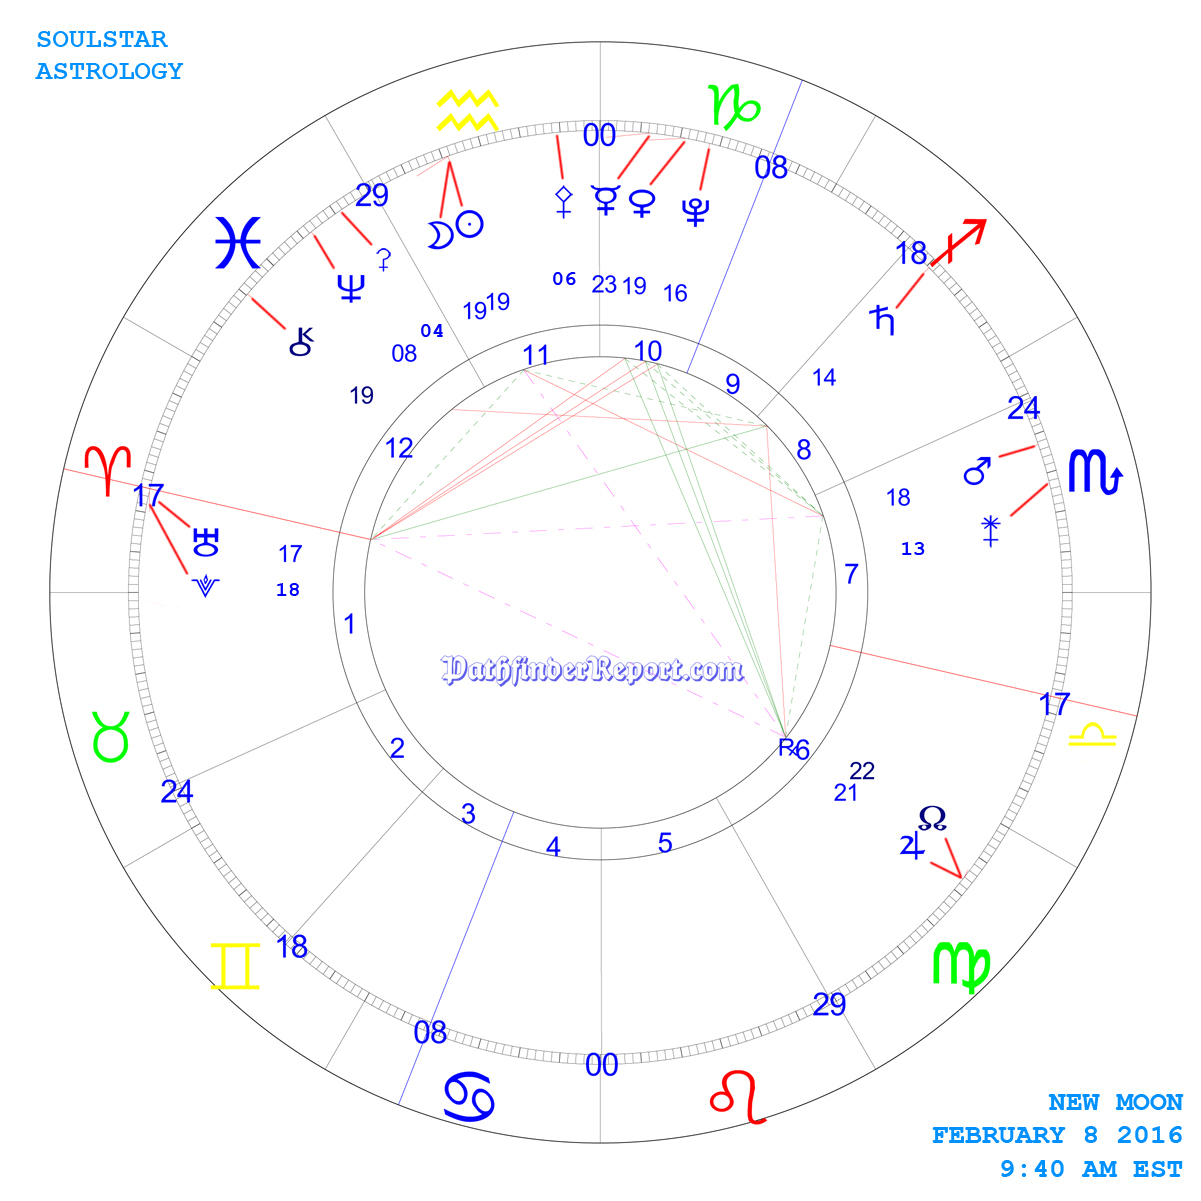 New Moon Chart for Monday February 8th 9:40 AM